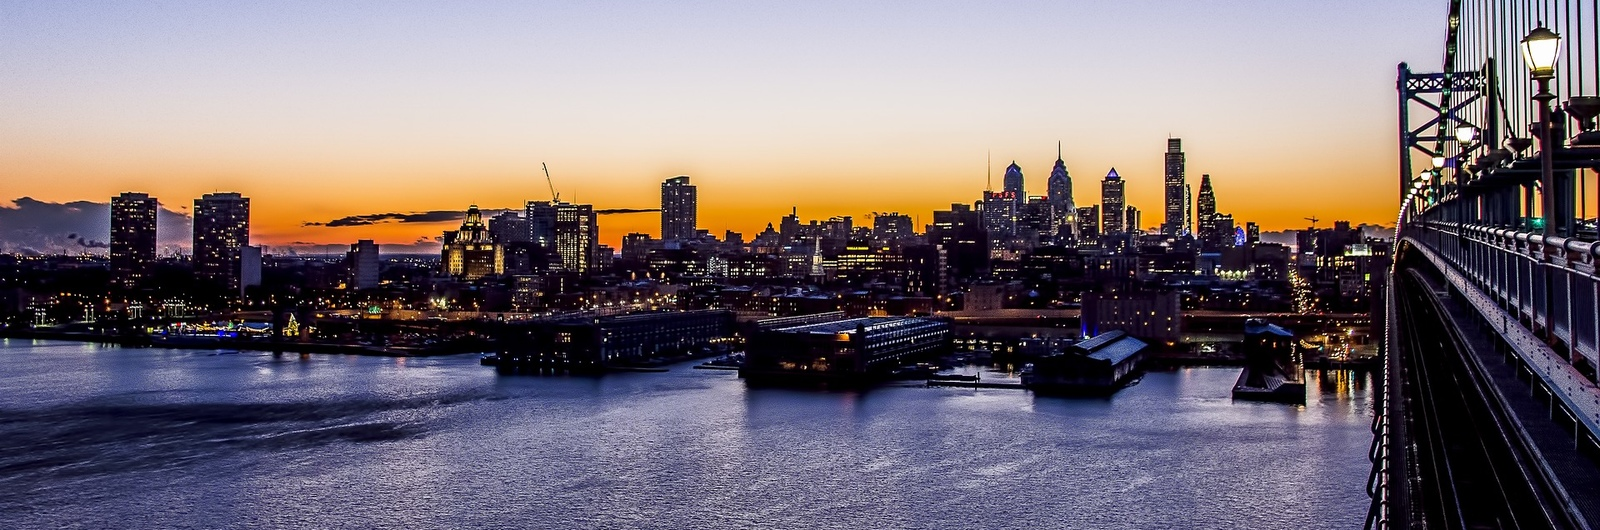 philadelphia city header